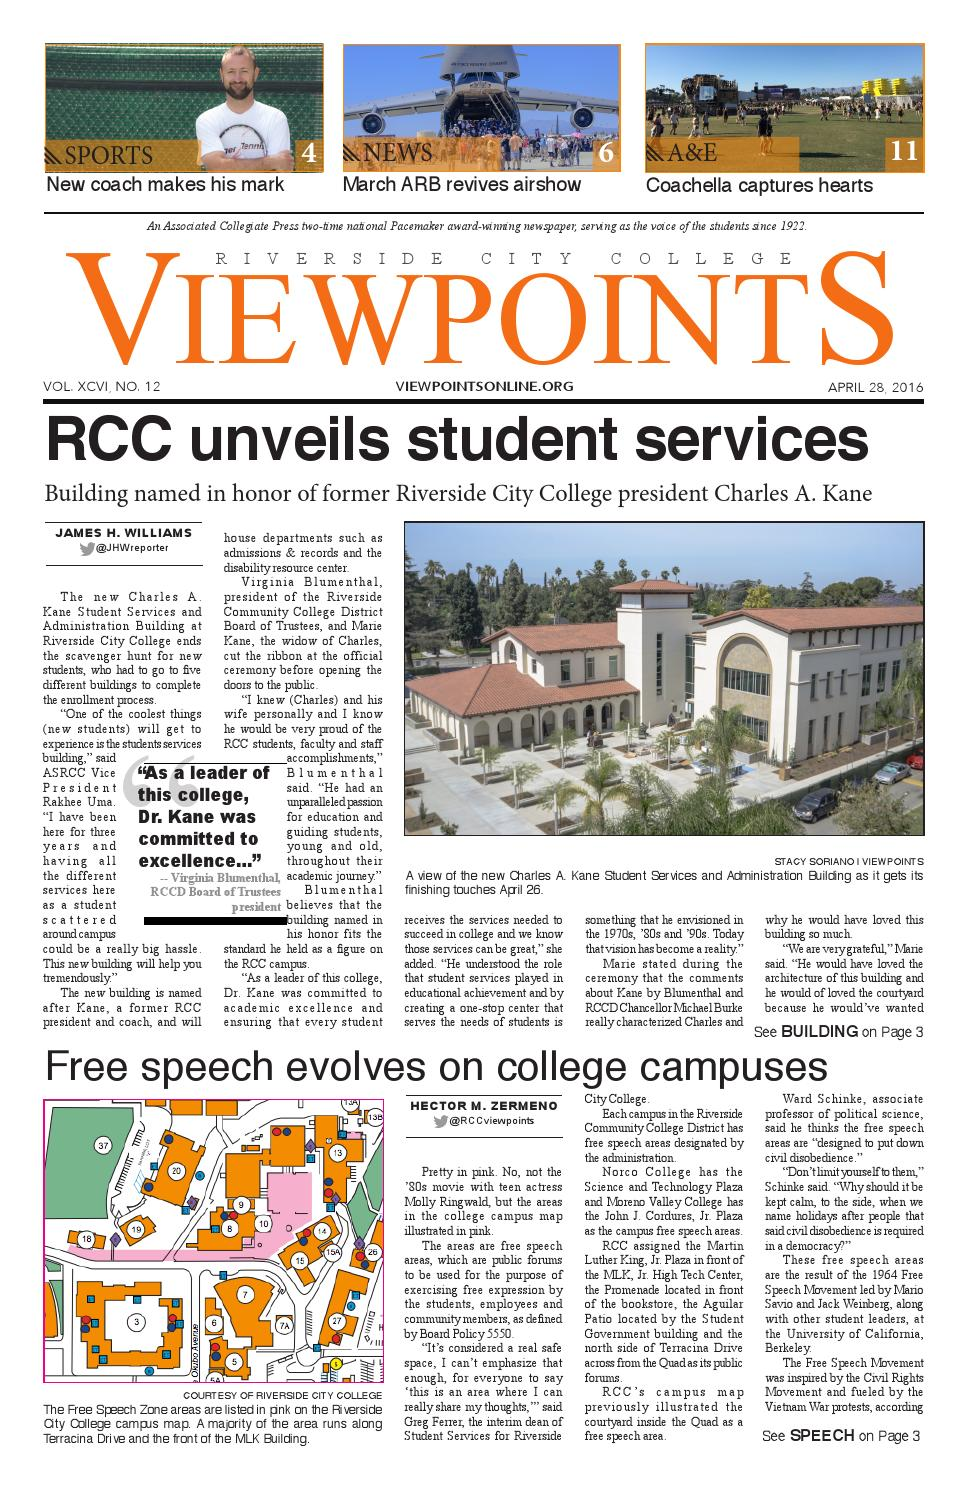 Riverside City College Campus Map.Viewpoints Issue No 12 April 28 2016 By Rcc Viewpoints Issuu